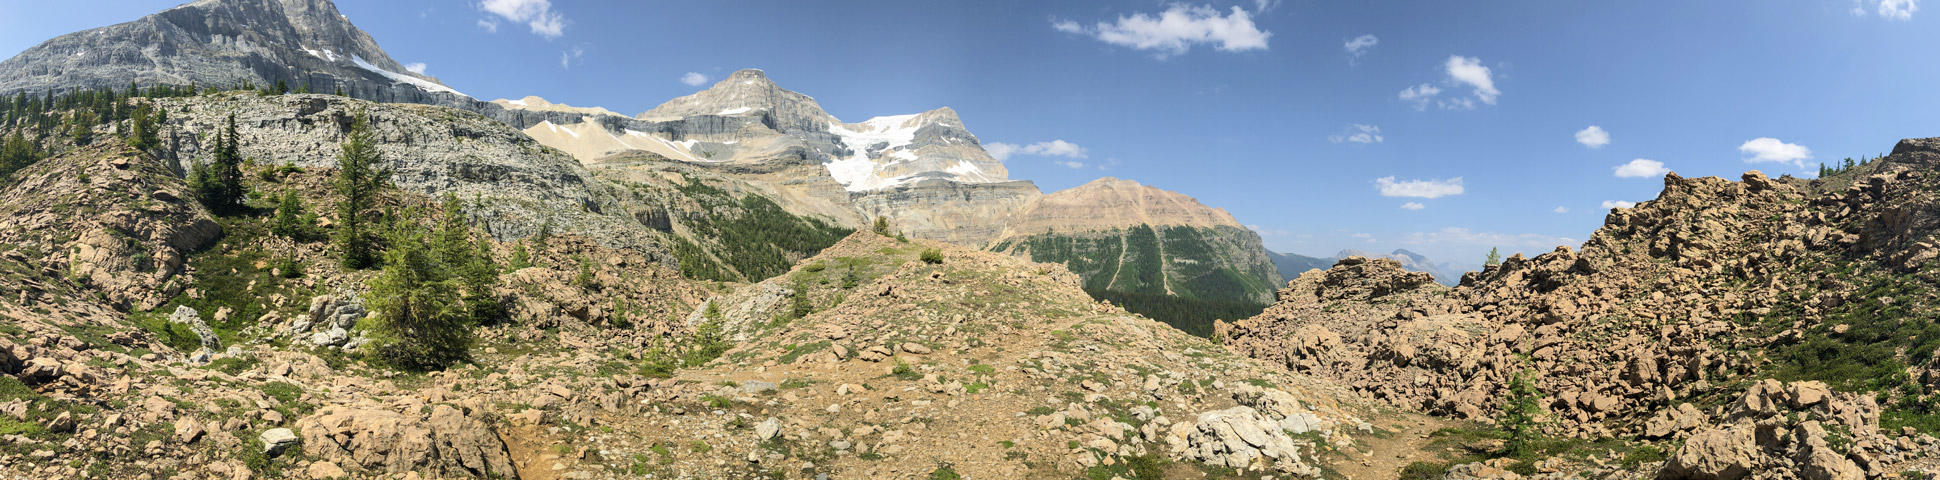 Panorama on Ball Pass hike in Kootenay National Park, the Canadian Rockies